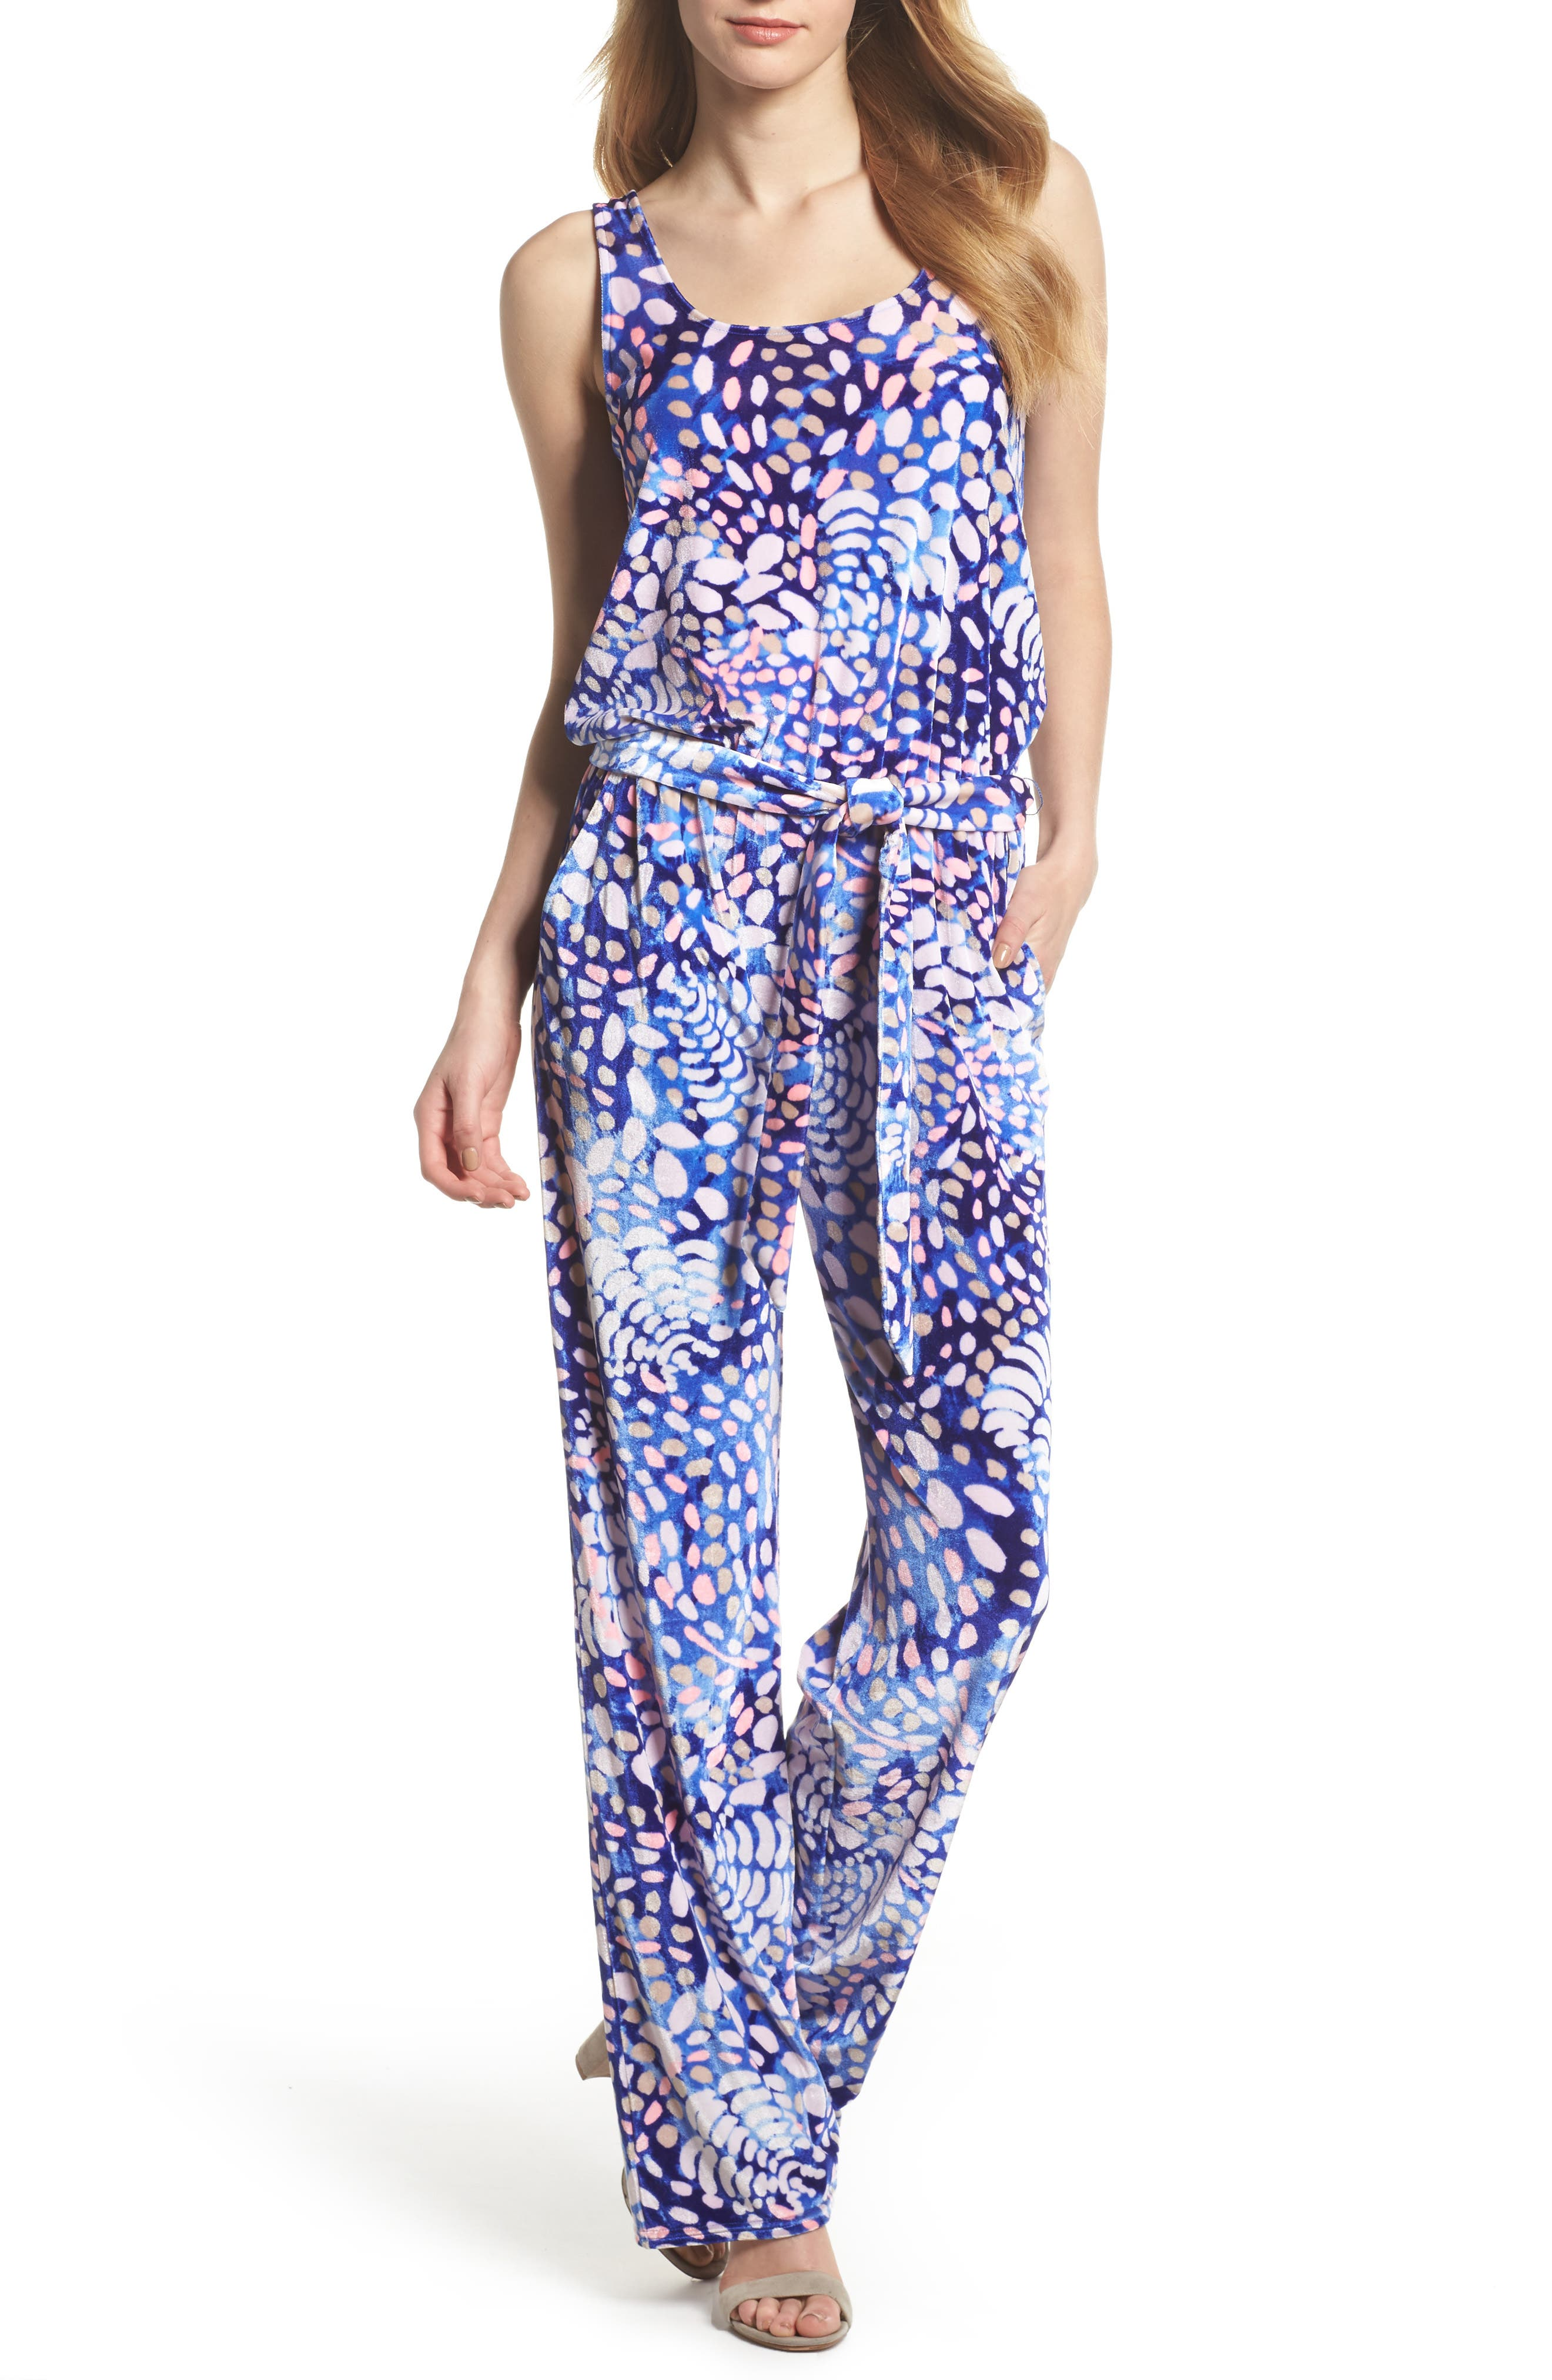 Nena Velour Jumpsuit,                             Main thumbnail 1, color,                             Beckon Blue Sparkling Grotto